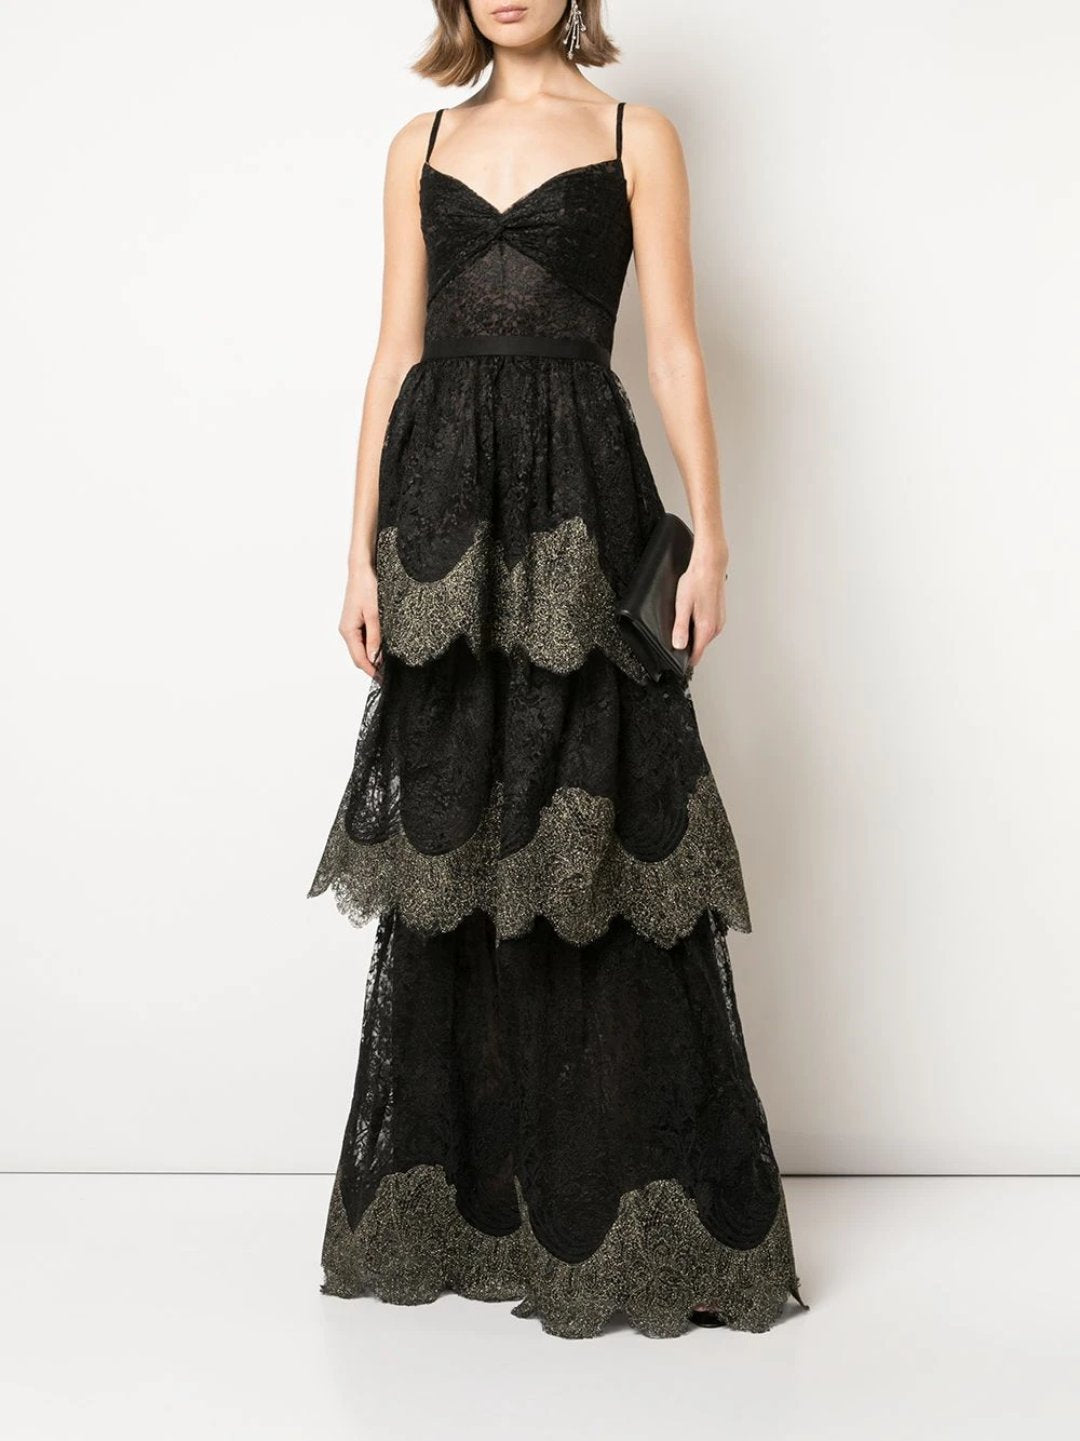 Twisted Tiered Metallic Lace Gown